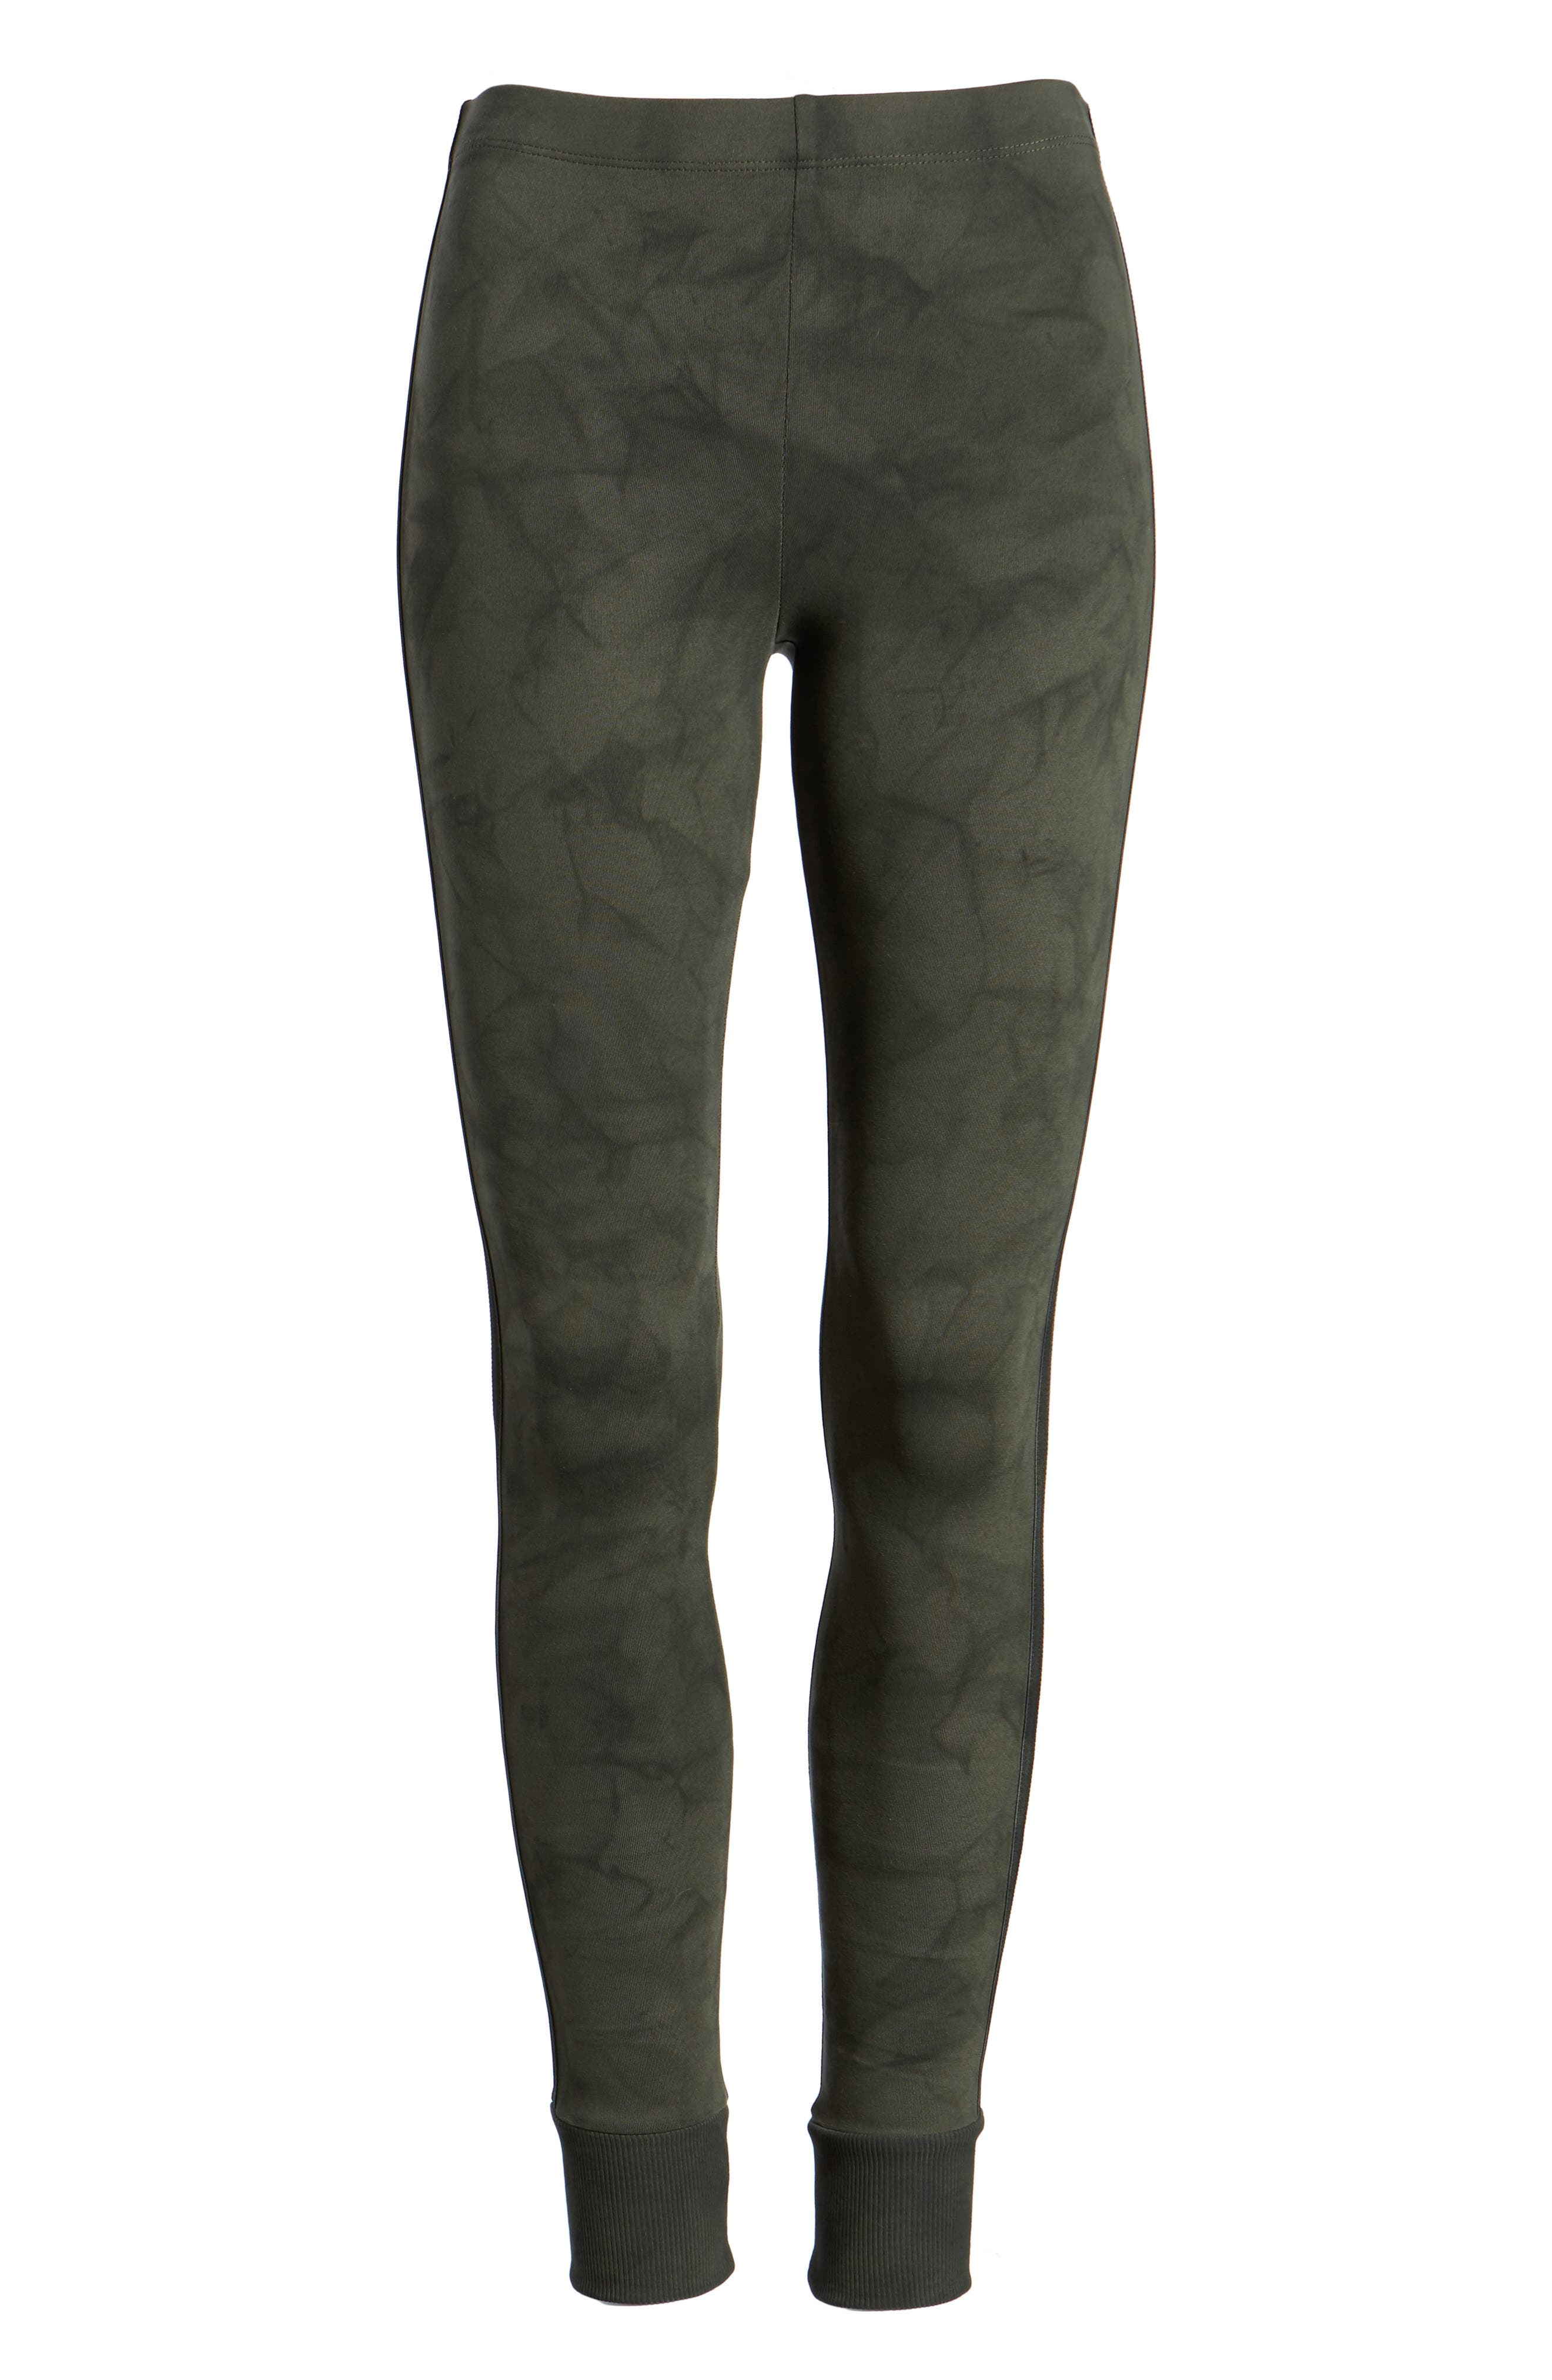 Kiely Ribbed Cuff Leggings,                         Main,                         color, Army Green